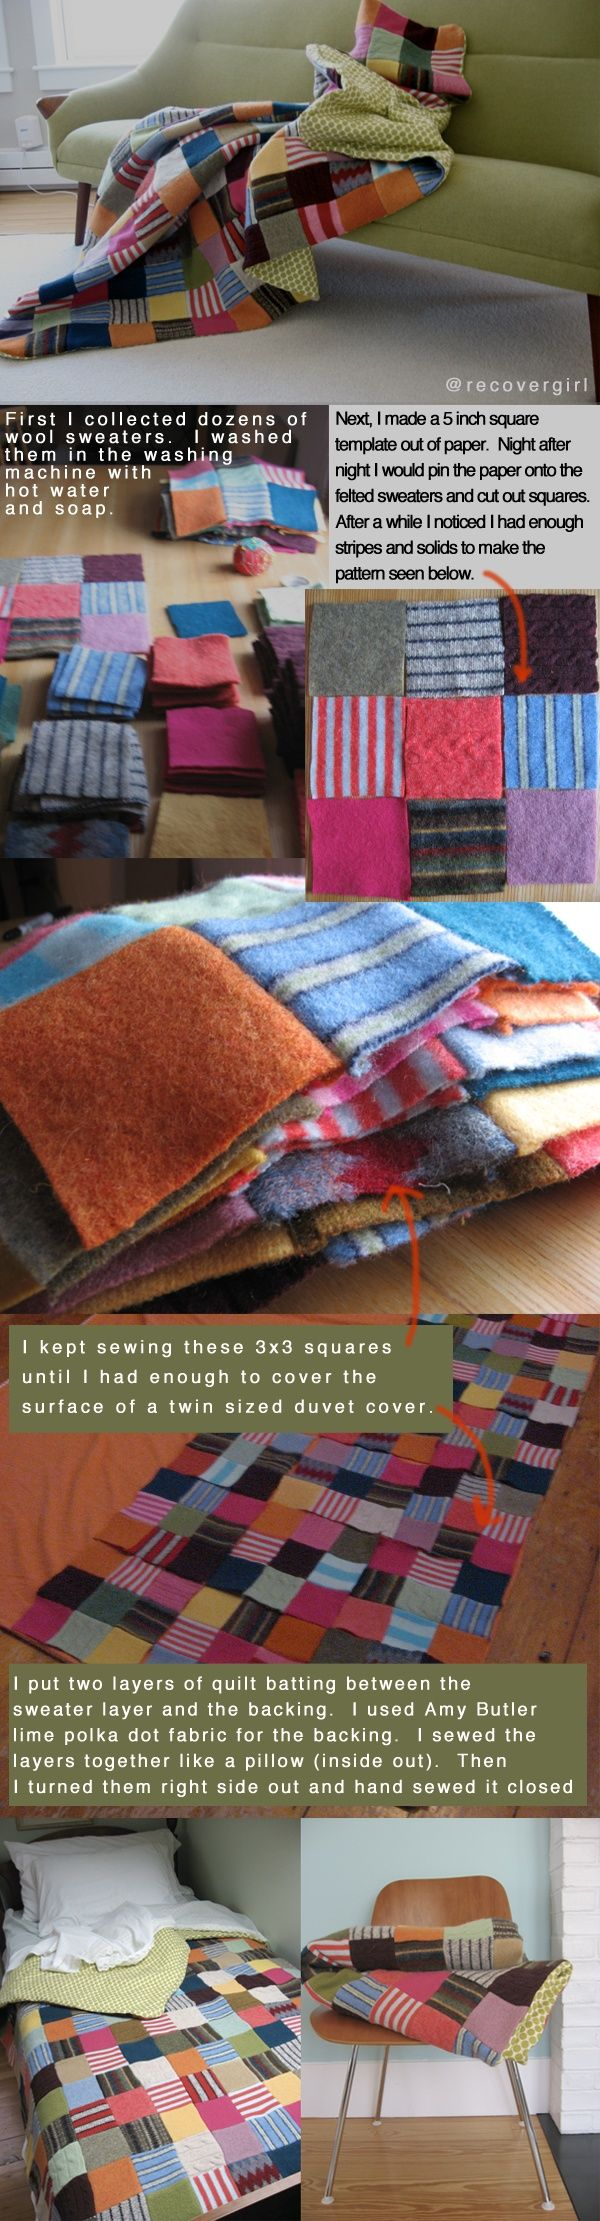 Felted Sweater Blanket | this looks awesome..